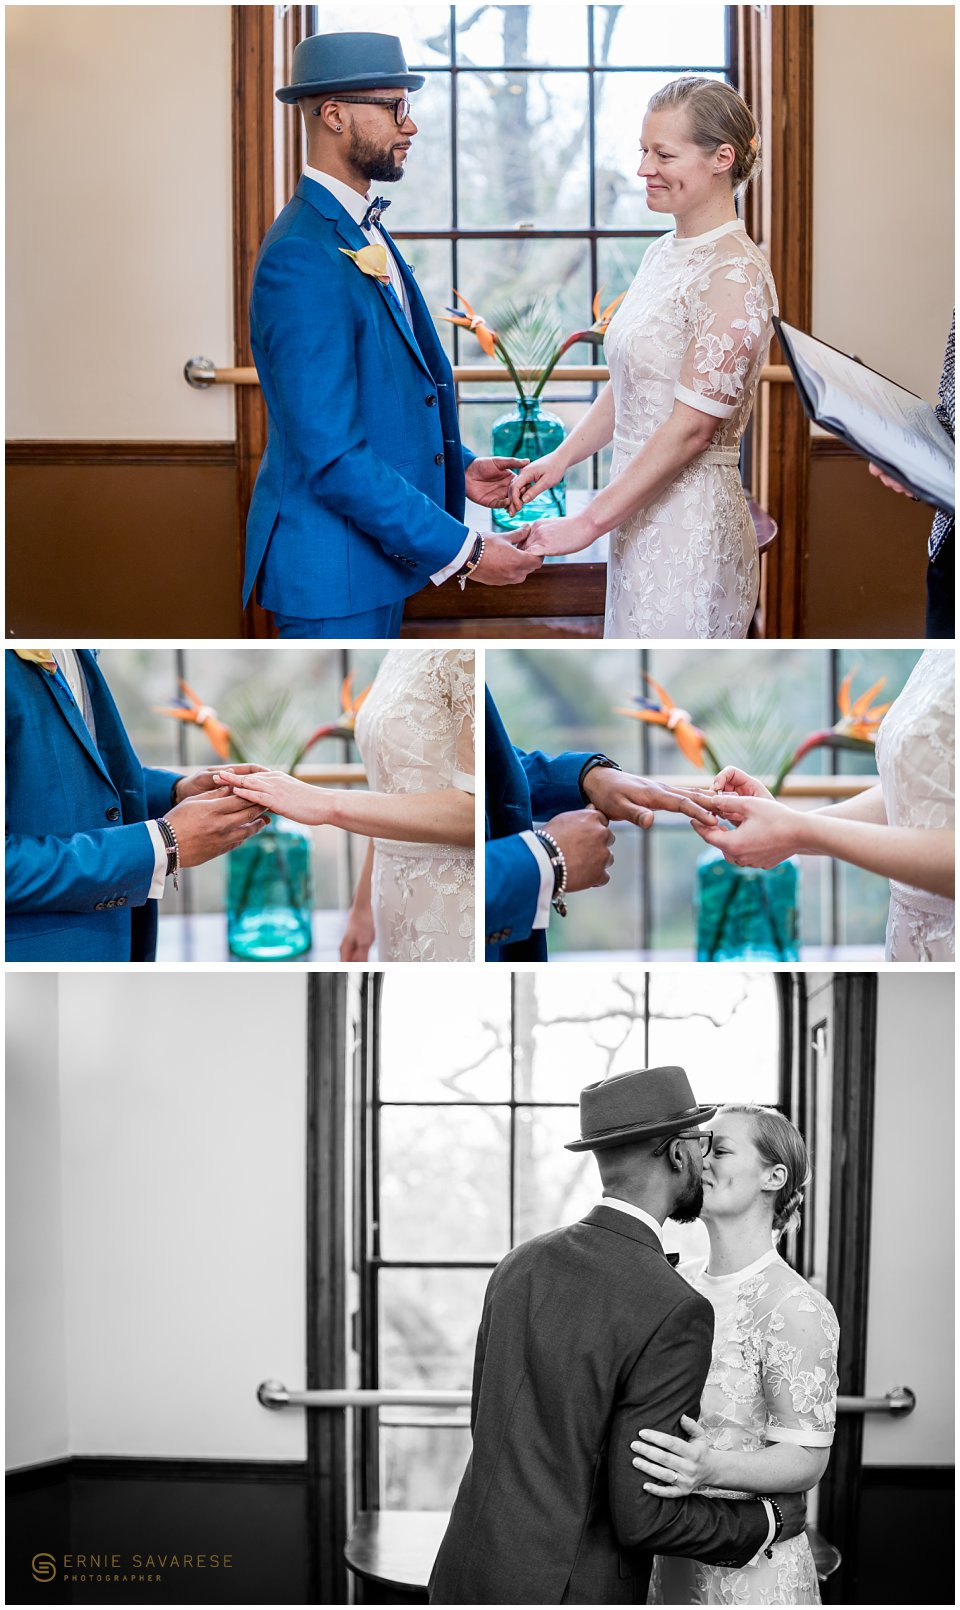 Wedding Photographer Greenwich Severndroog Castle 7